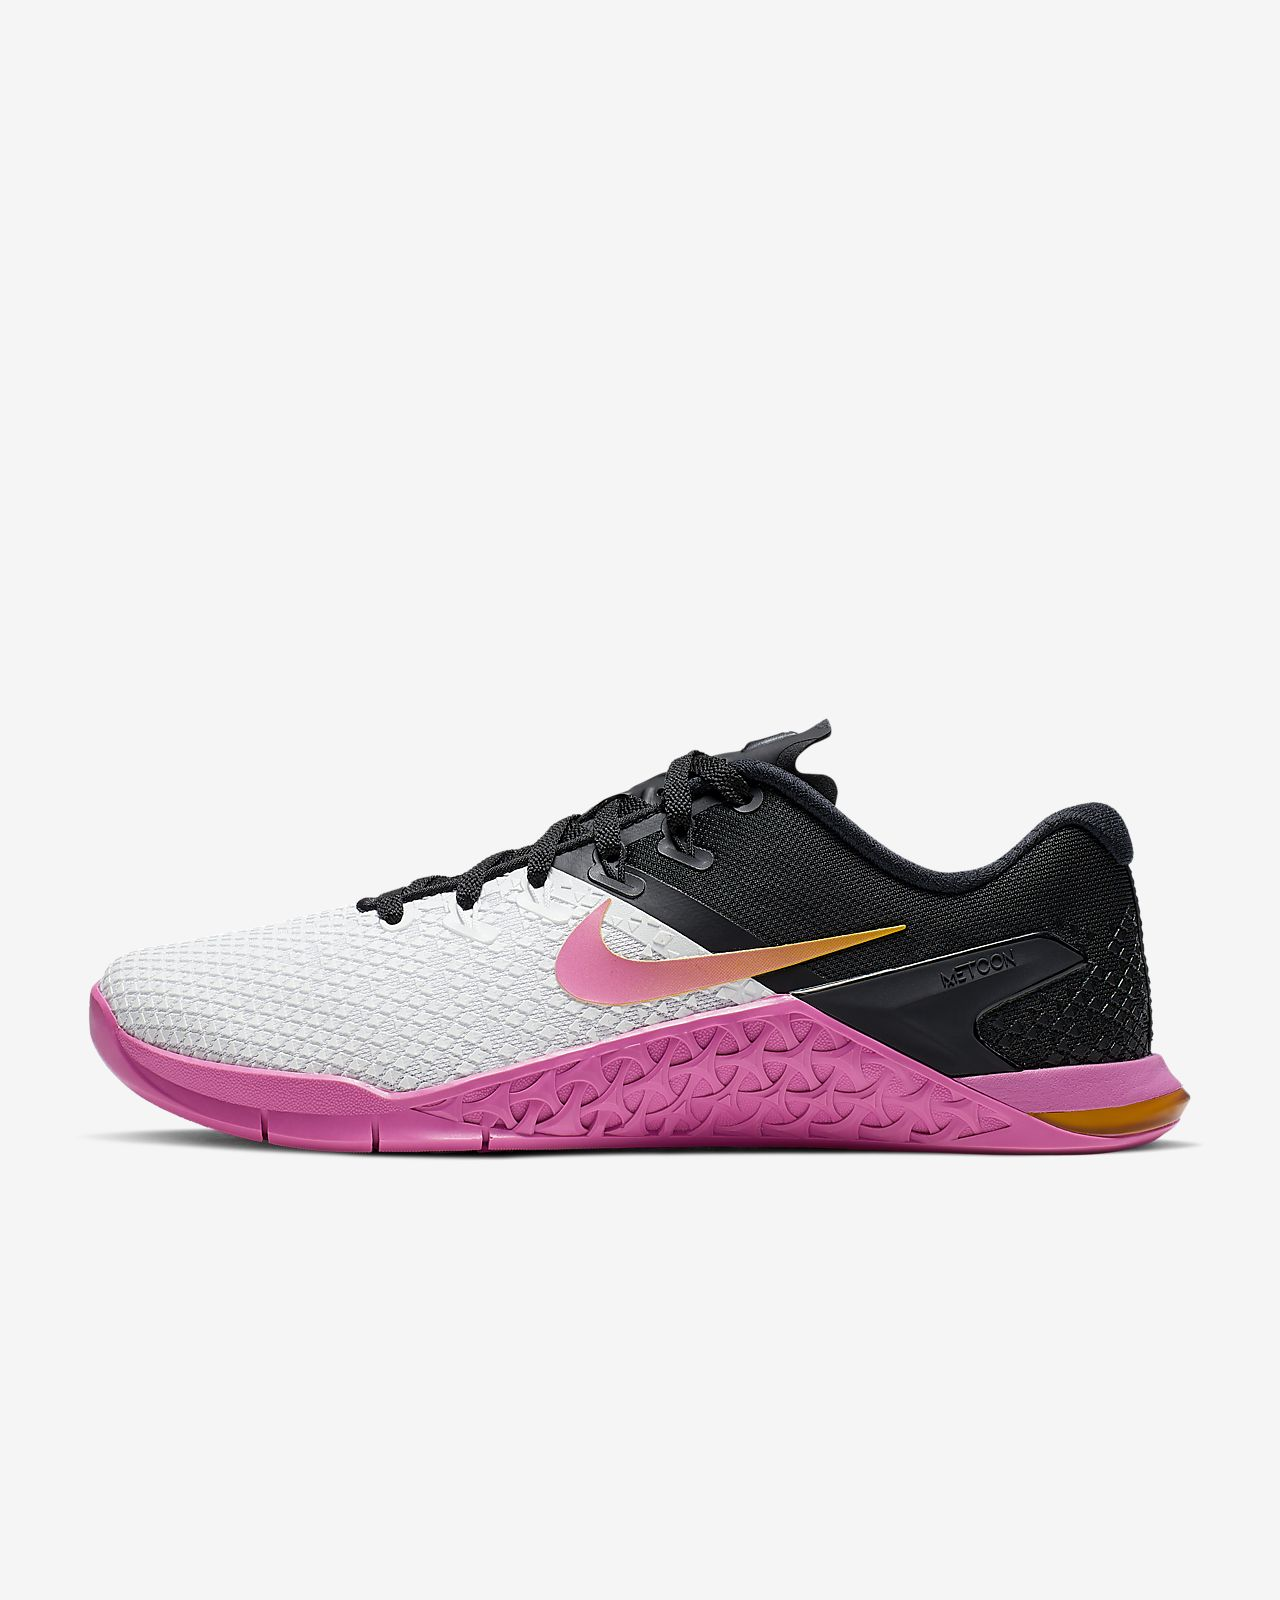 73d04bcd1f30 Nike Metcon 4 XD Women s Cross-Training Weightlifting Shoe. Nike.com NO